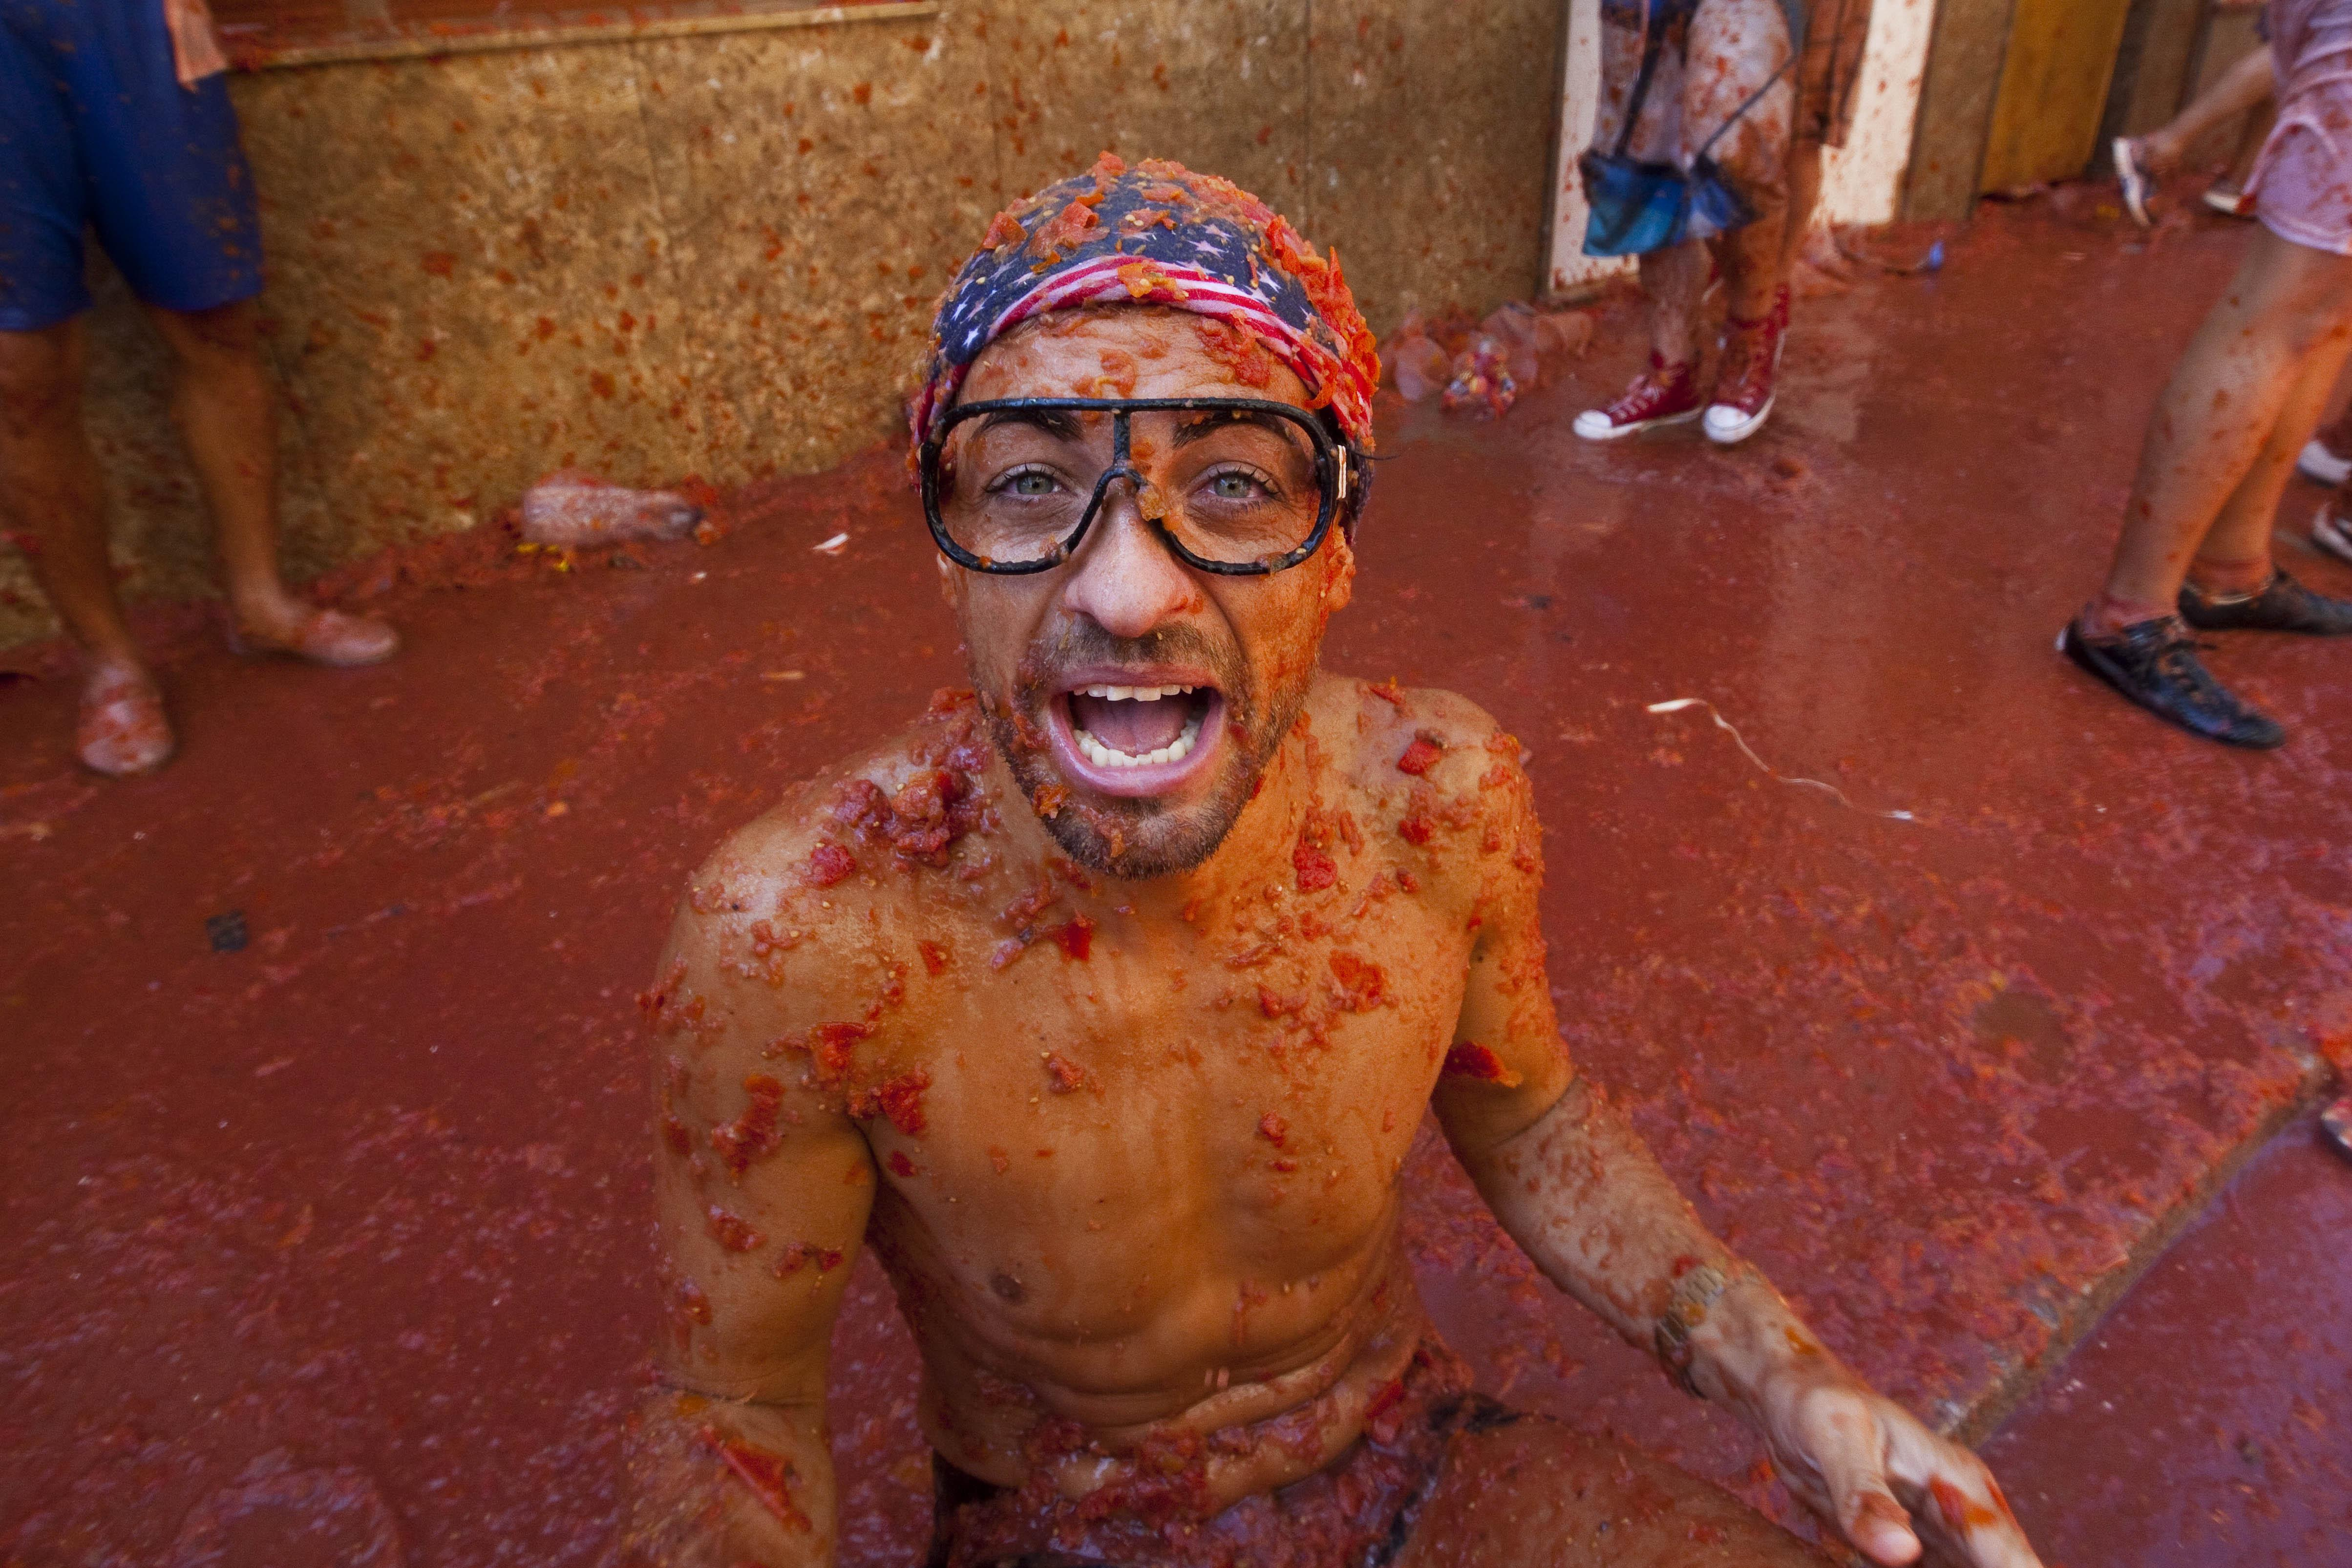 La Tomatina Festival Pictures Video Facts And History Of Spanish Tomato Throwing